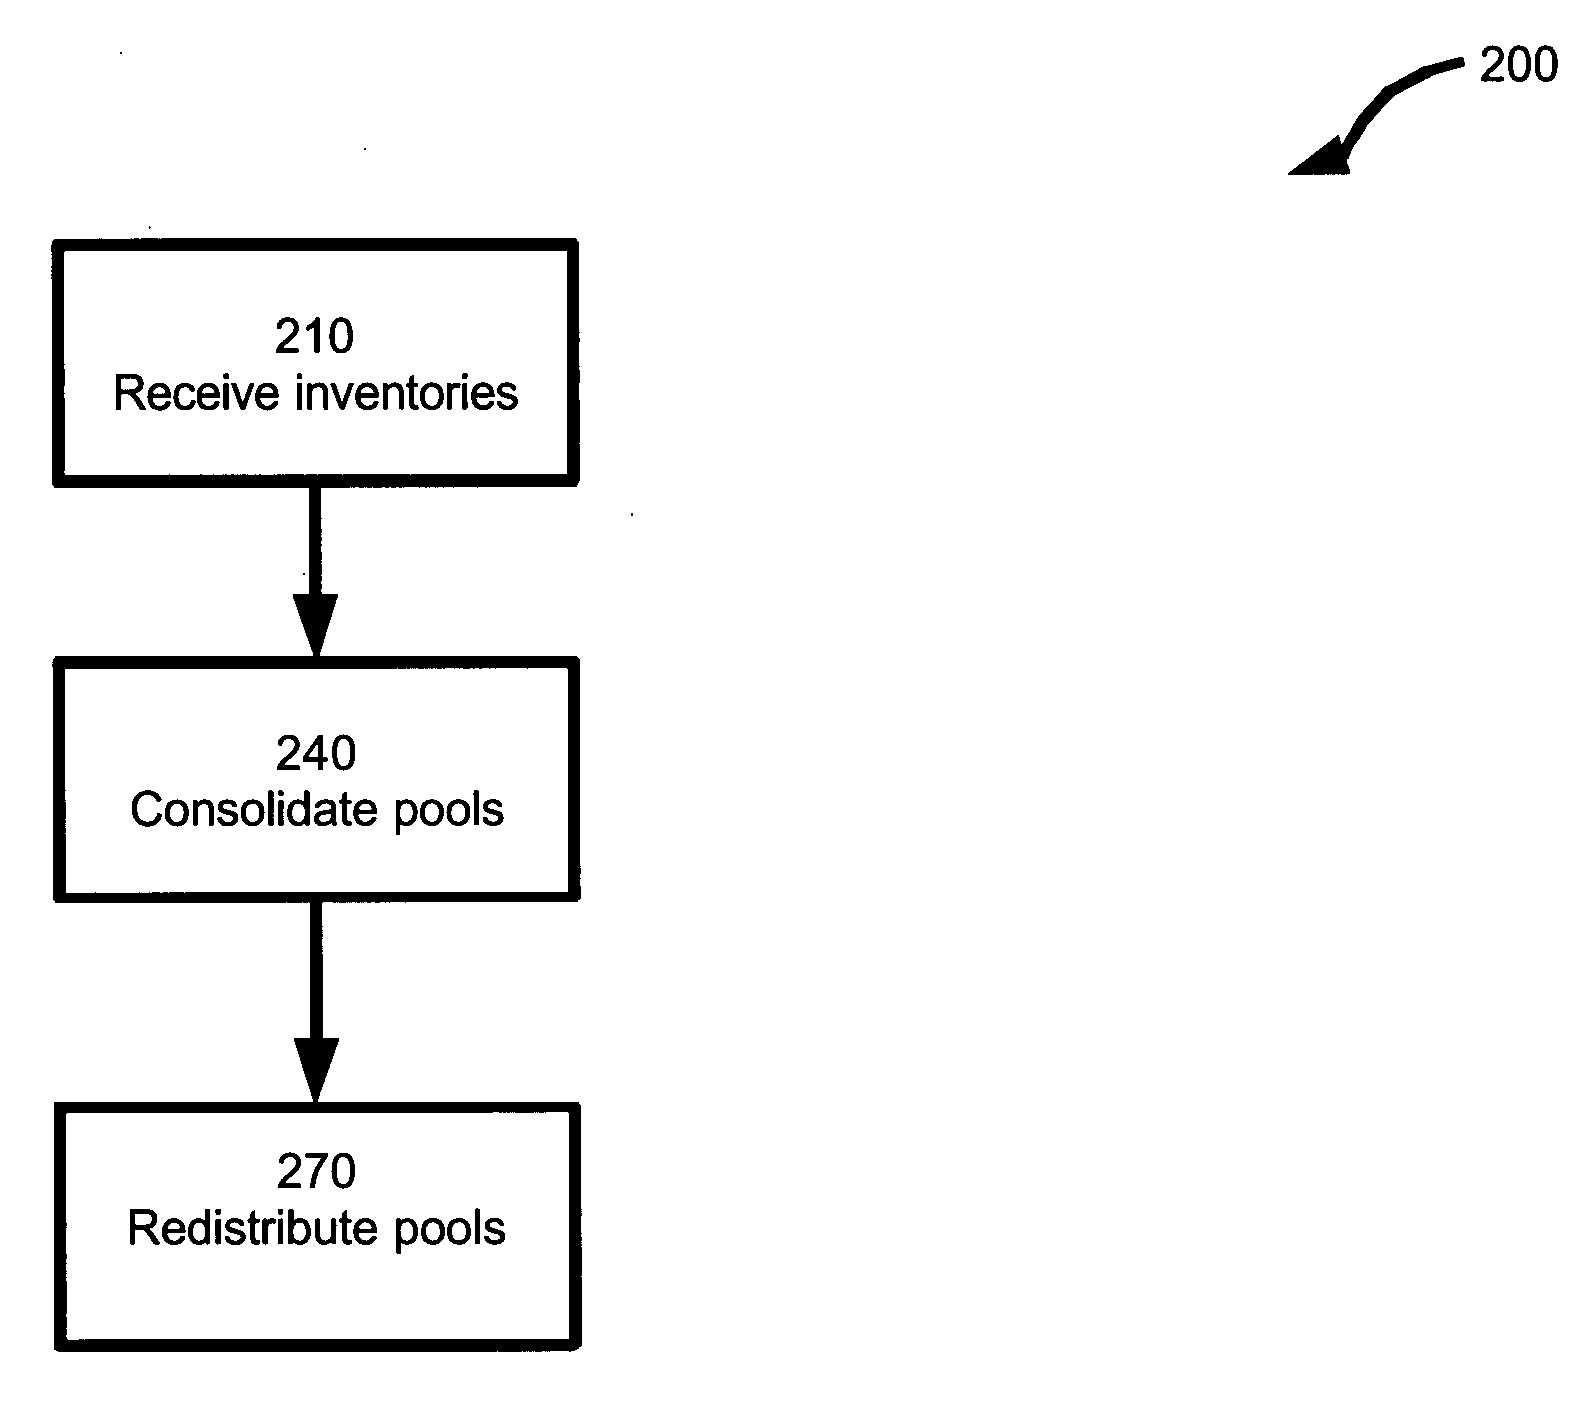 Bank loan trading system and method